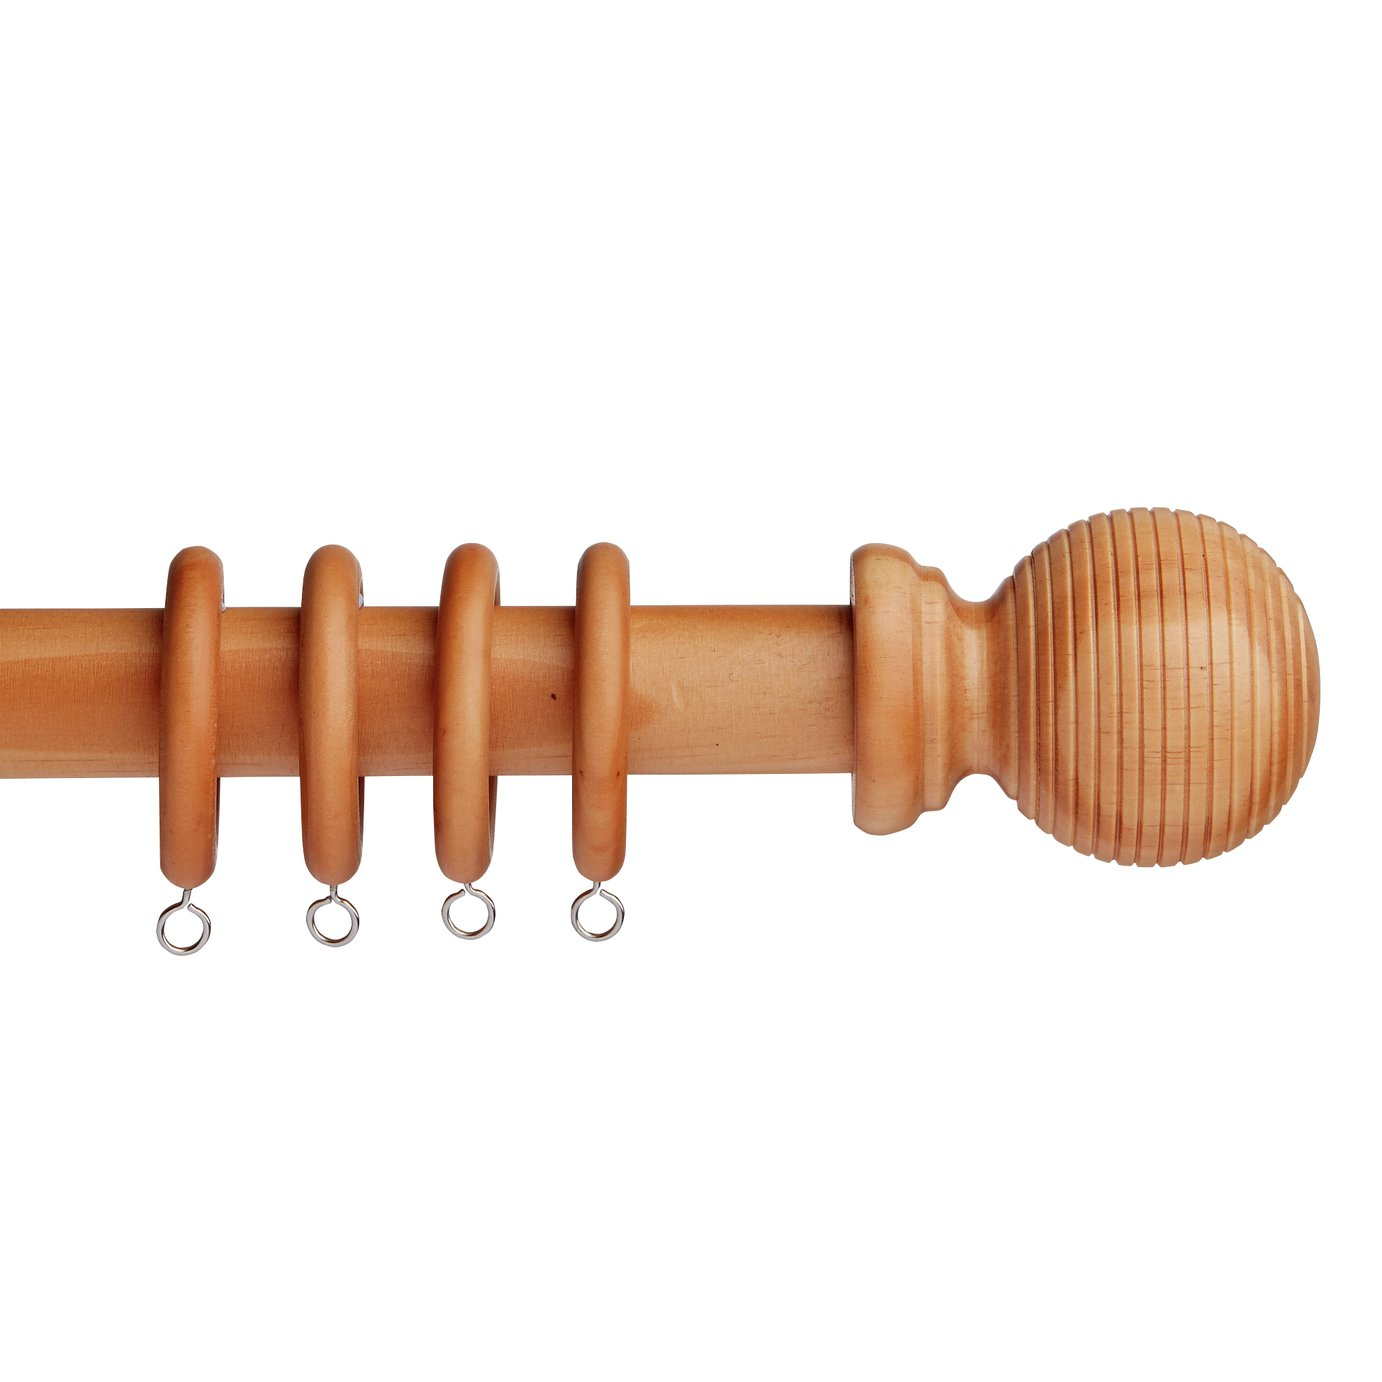 Argos Home 1.2m Grooved Ball Wooden Curtain Pole - Natural